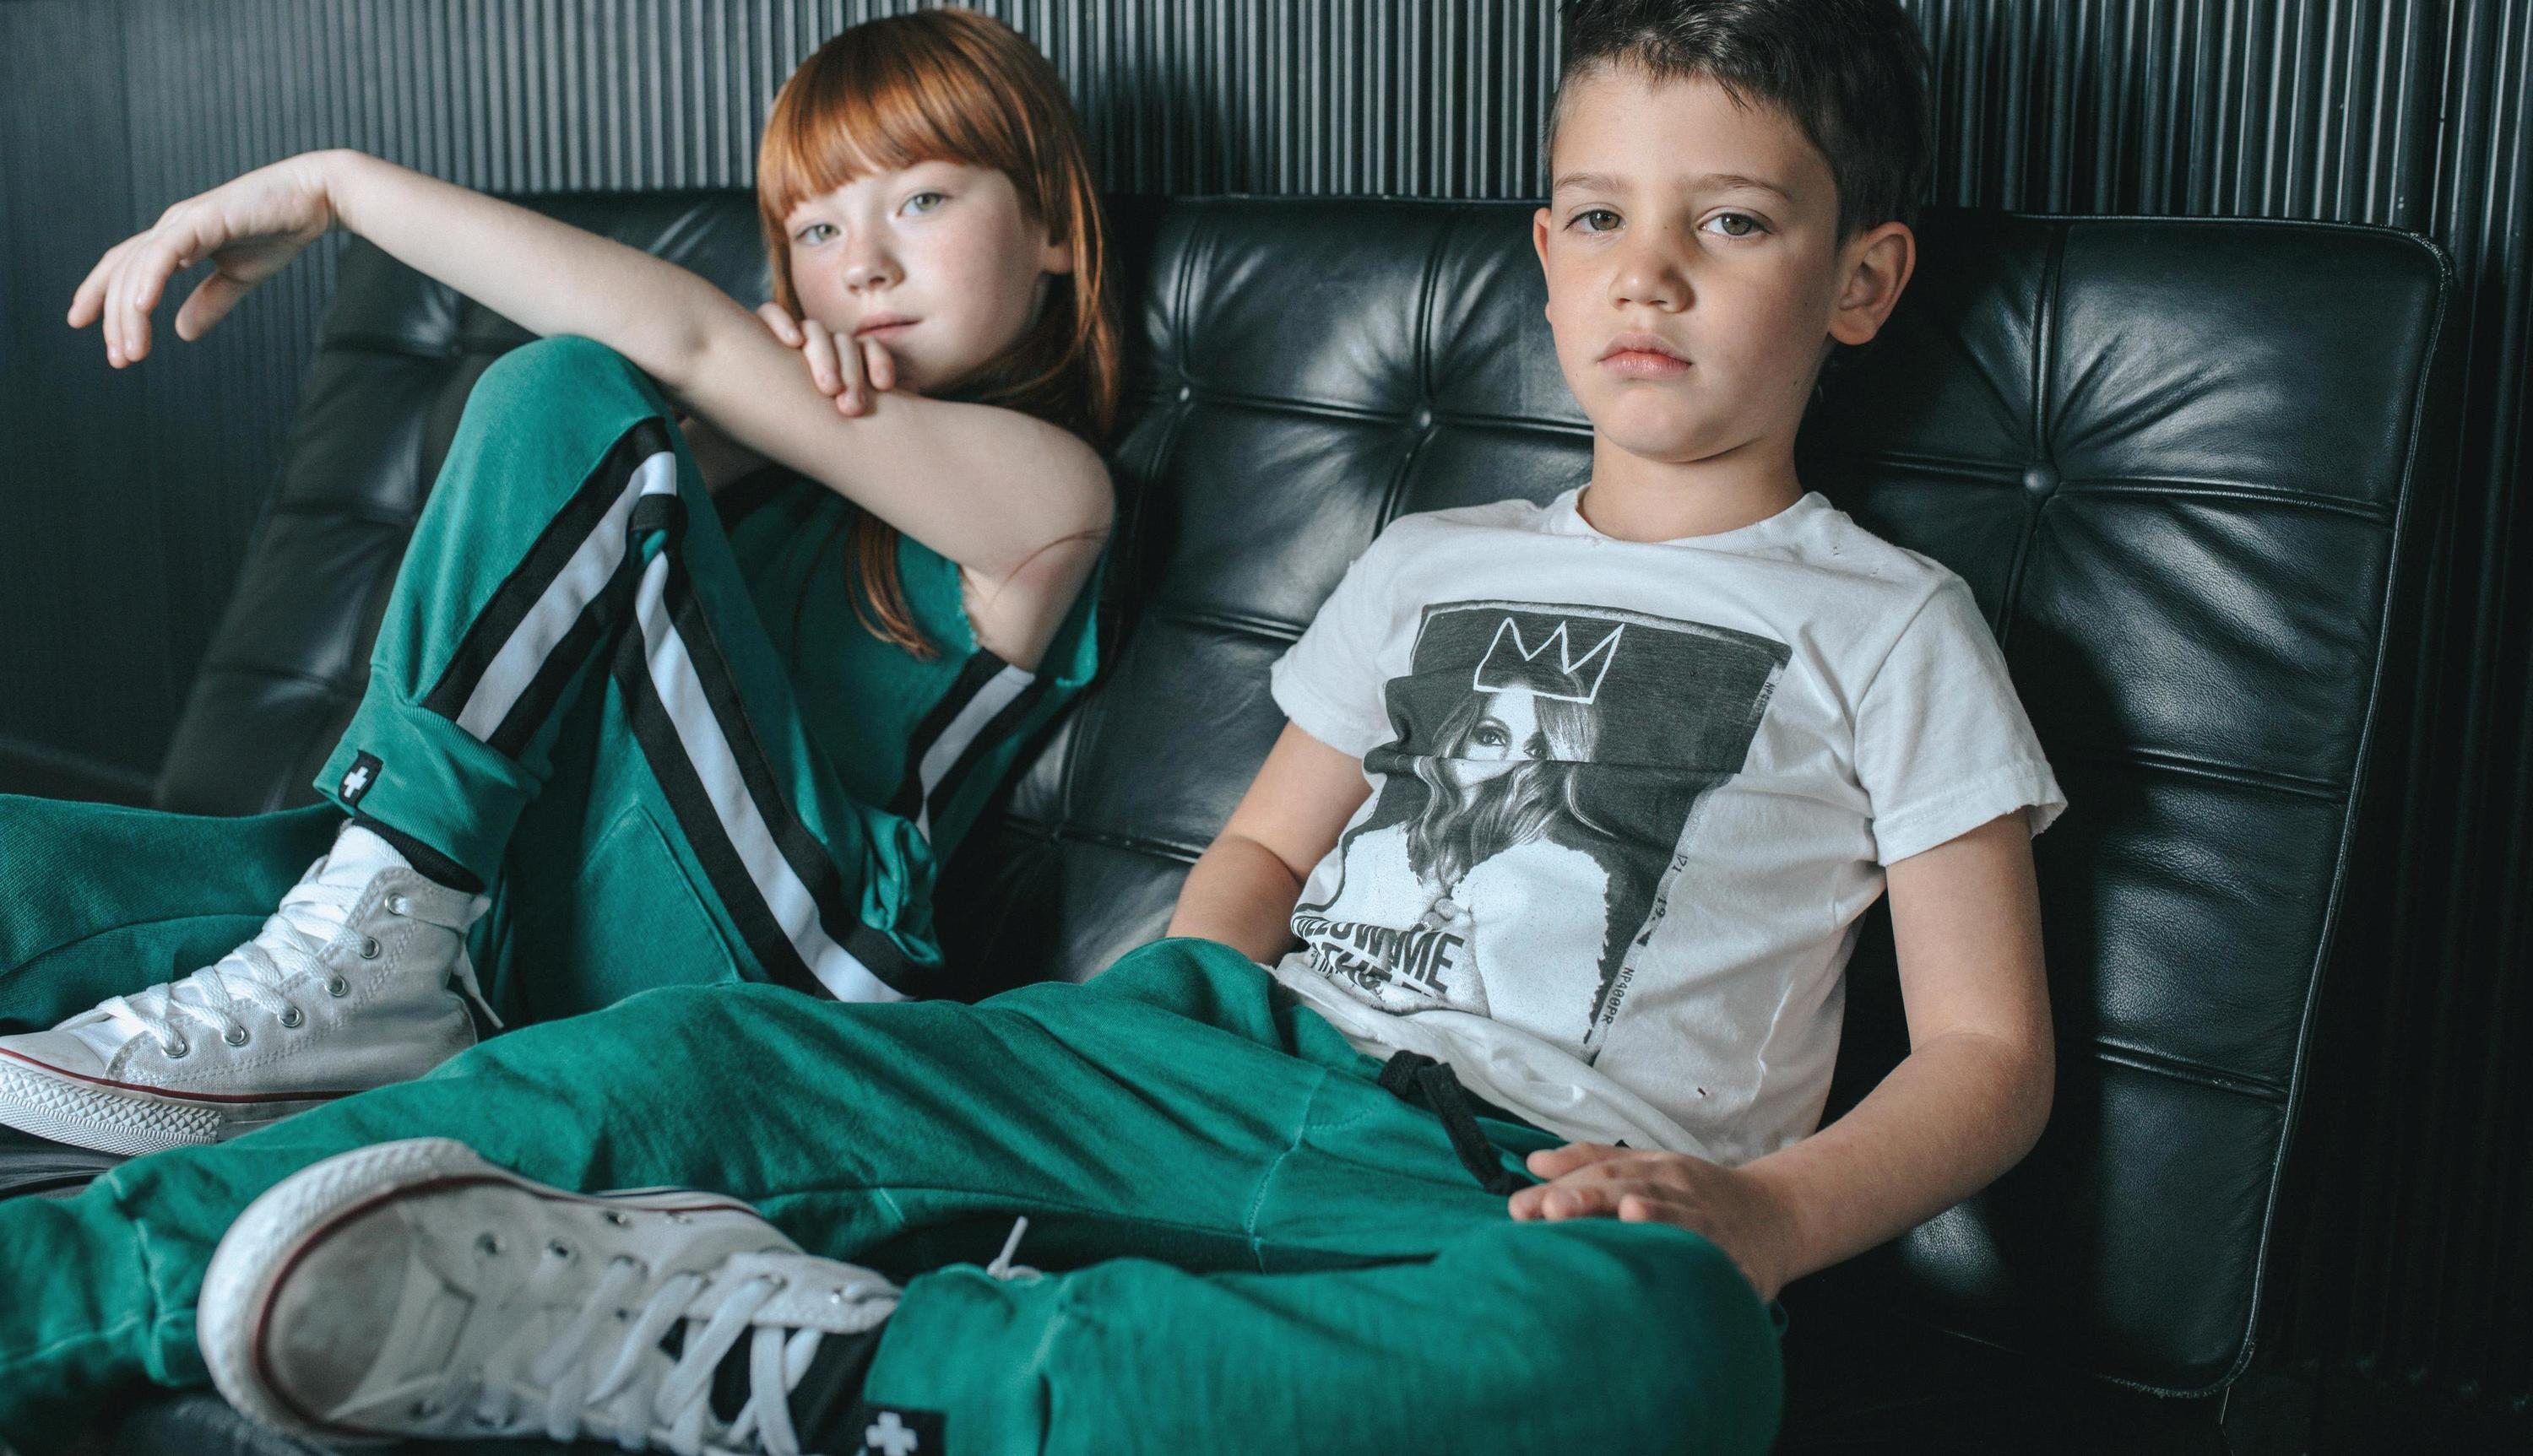 Local kids' fashion brands for the win